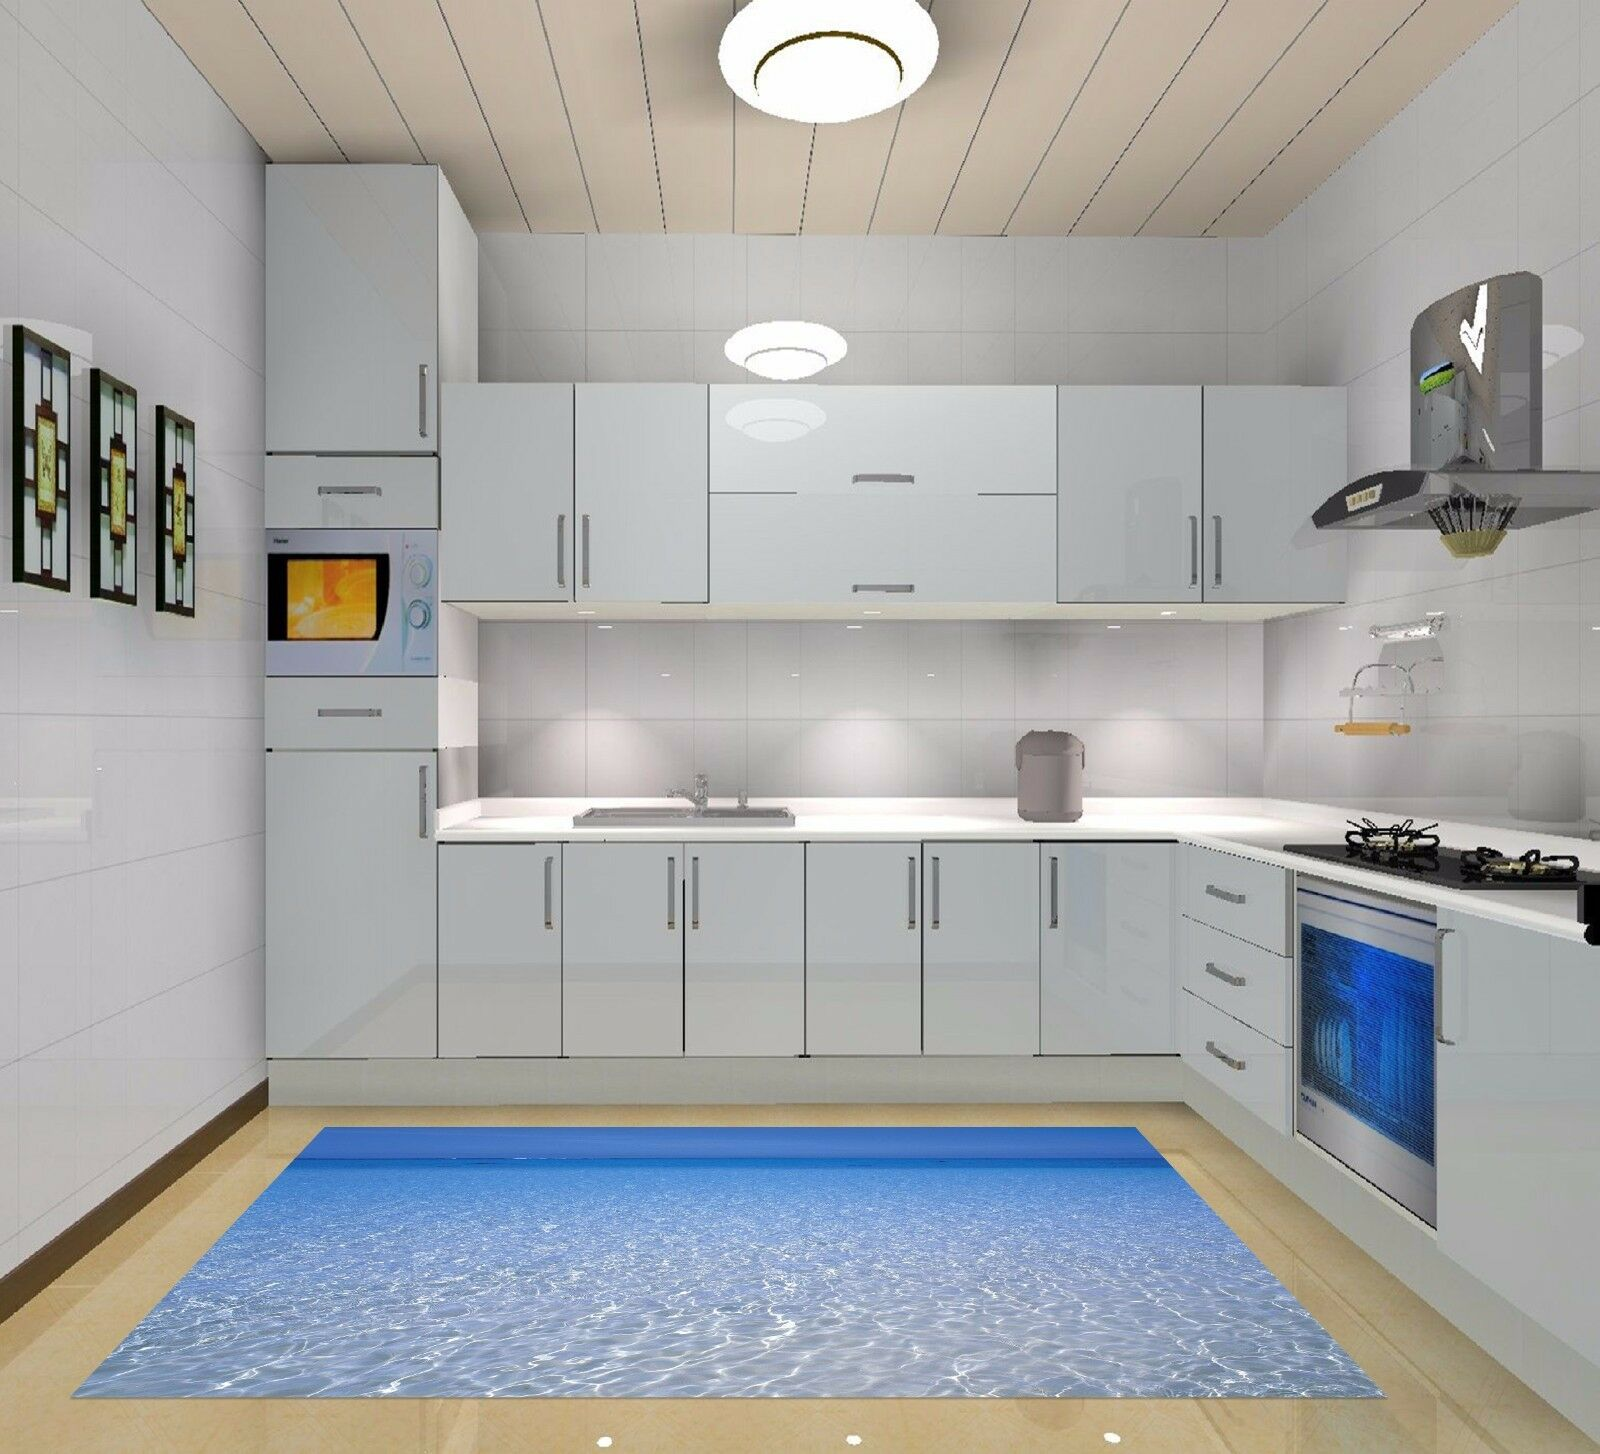 3D Shining Water Water Water Kitchen Mat Floor Murals Wall Print Wall Deco AJ WALLPAPER AU 2c4b4a